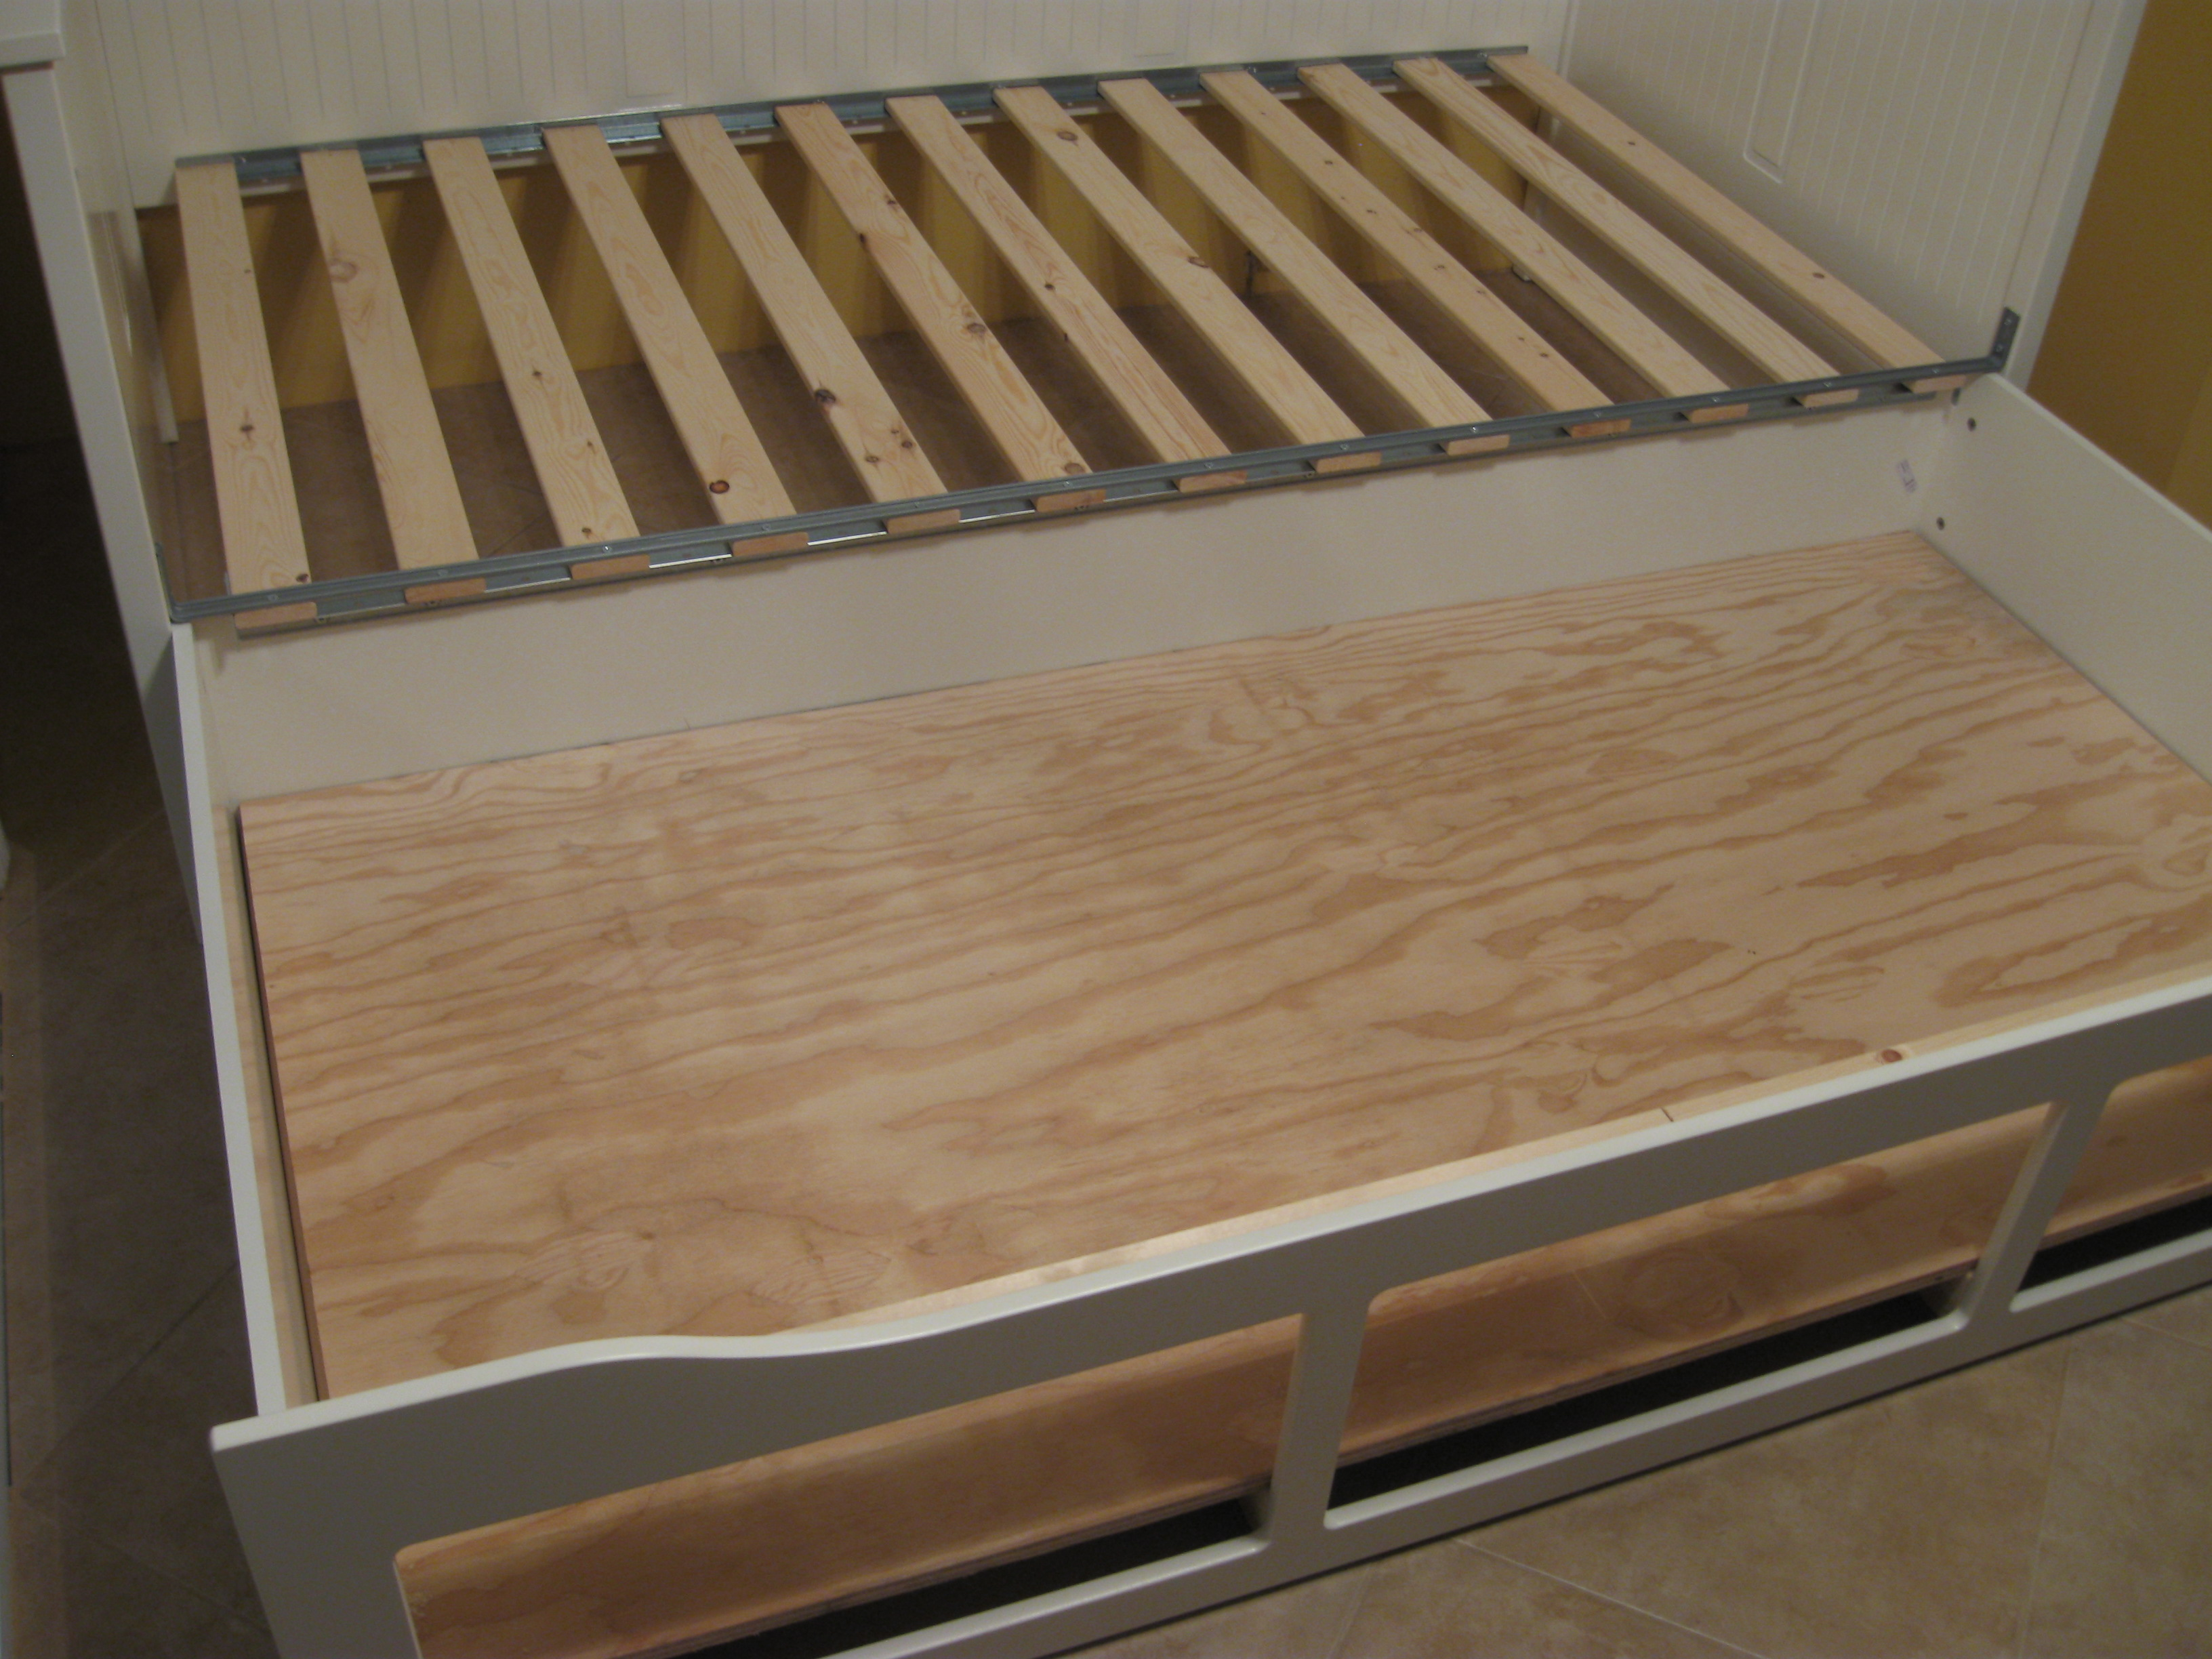 Ikea Hack Alert…Bench seating and dog bed